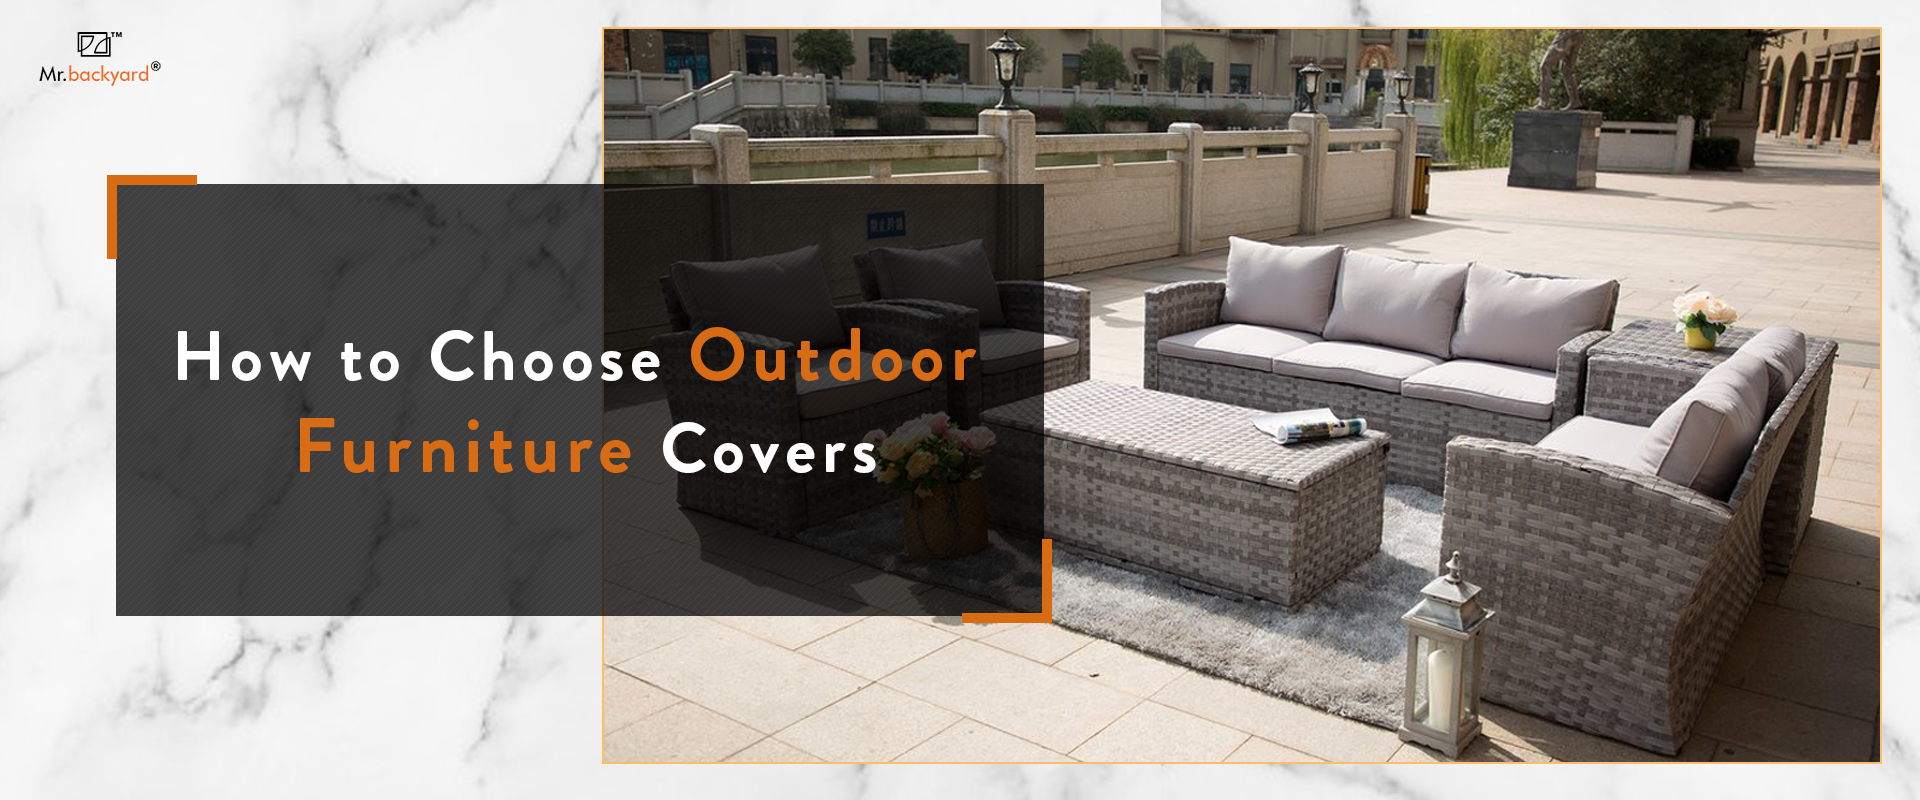 Miraculous How To Choose Outdoor Furniture Covers Mr Backyard Download Free Architecture Designs Viewormadebymaigaardcom